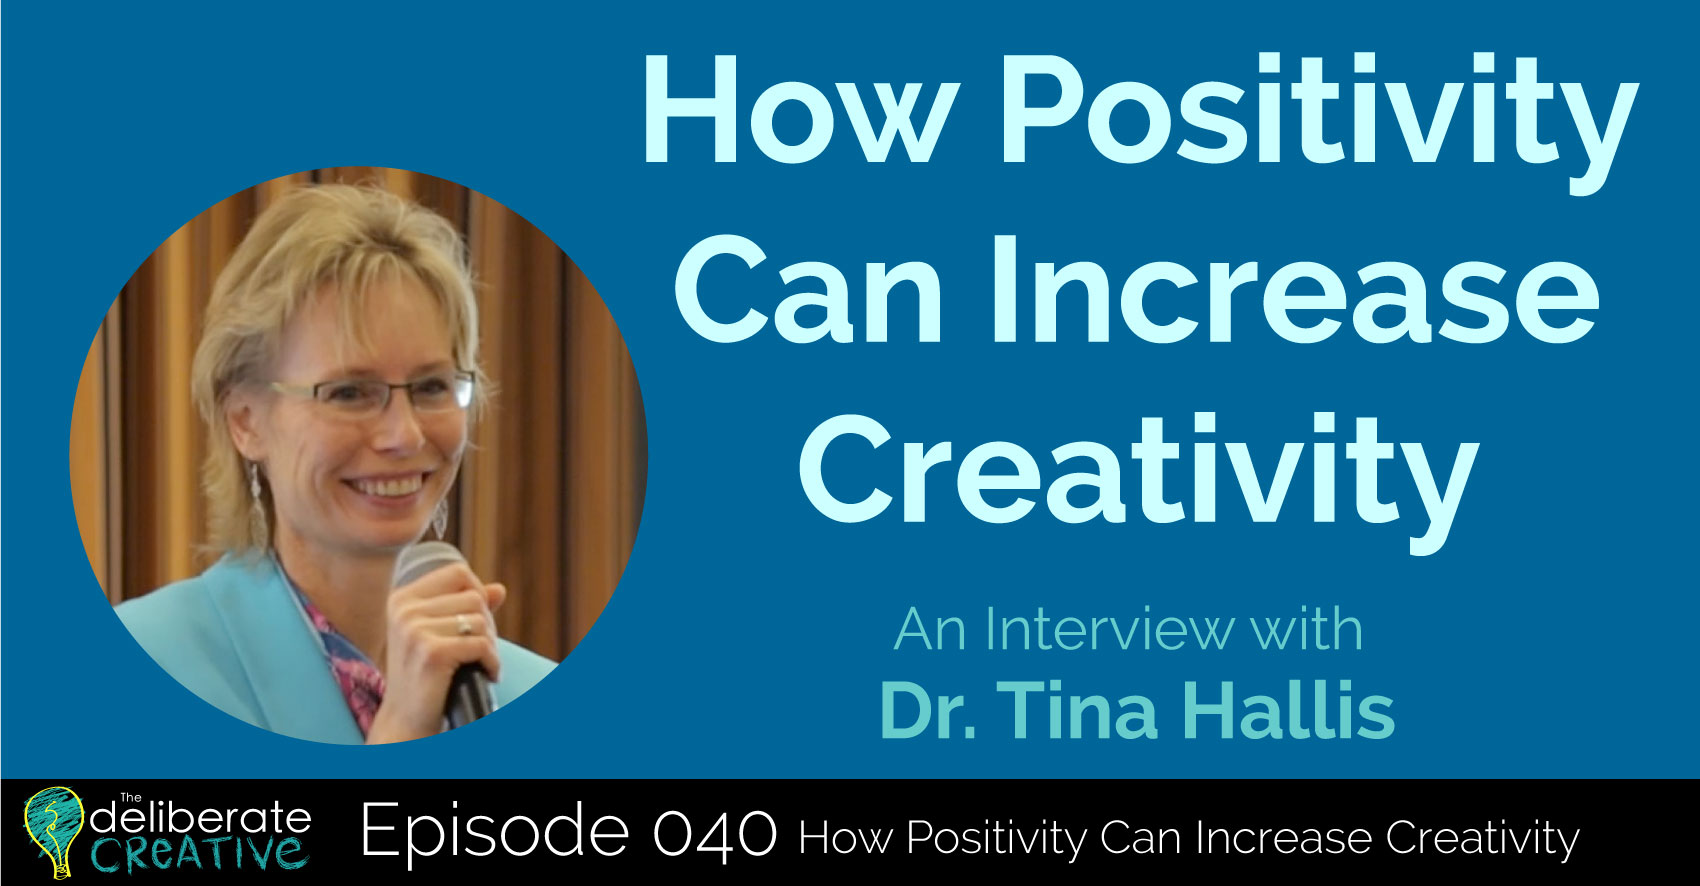 Deliberate Creative Podcast Episode 40: How Positivity Can Increase Creativity